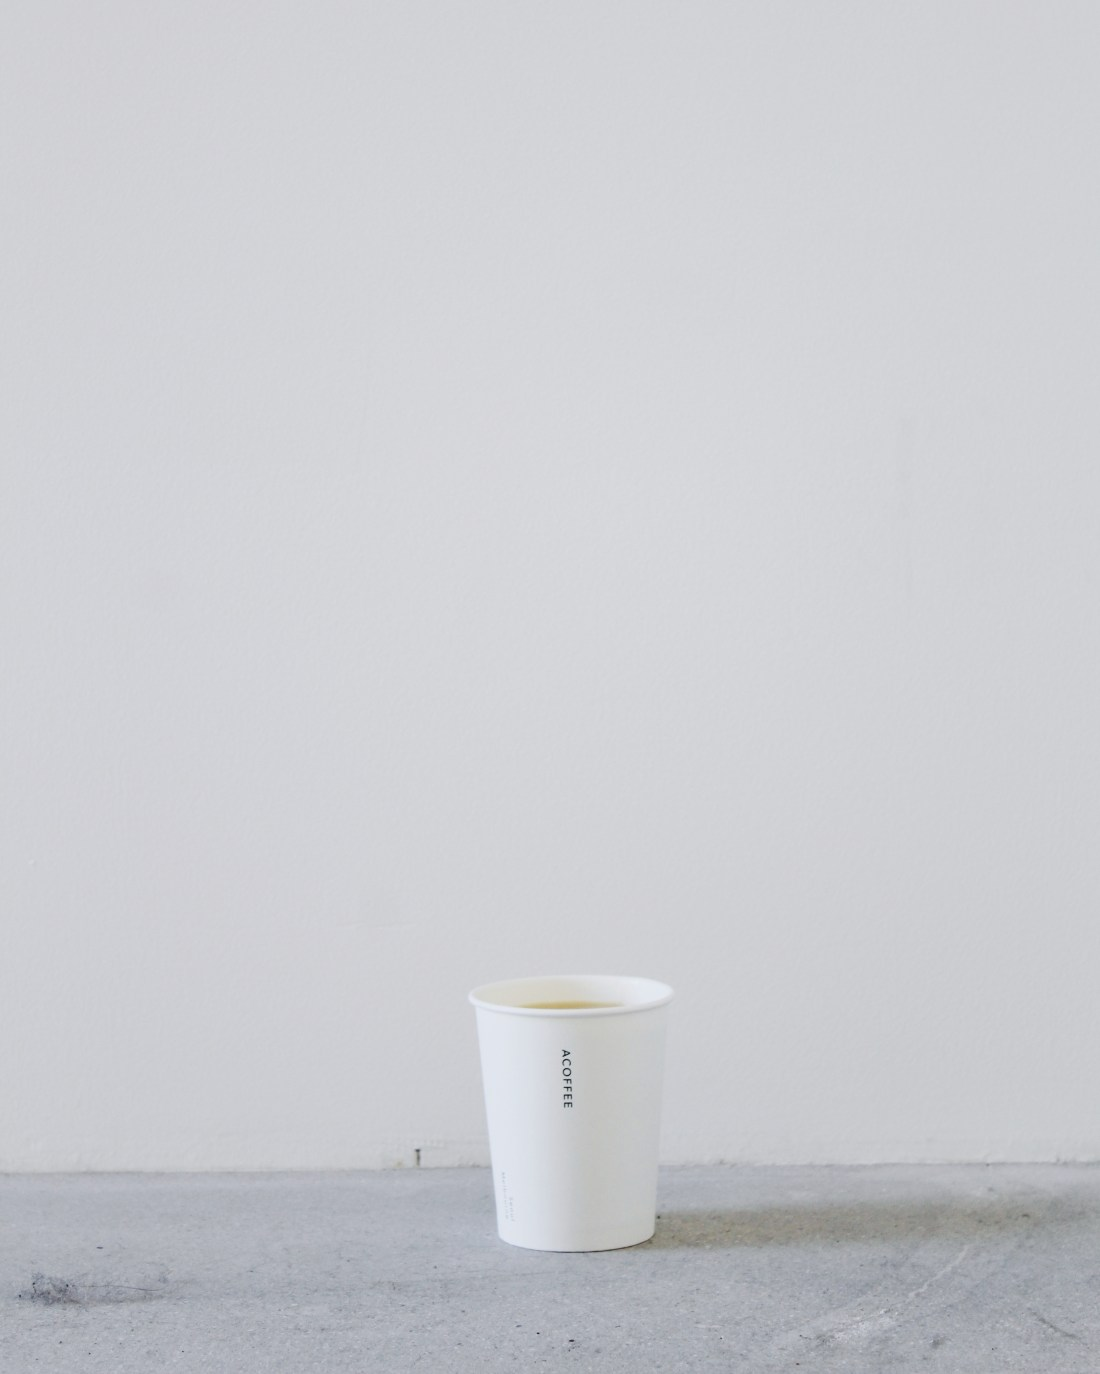 A coffee cup from ACOFFEE in front of a gray background